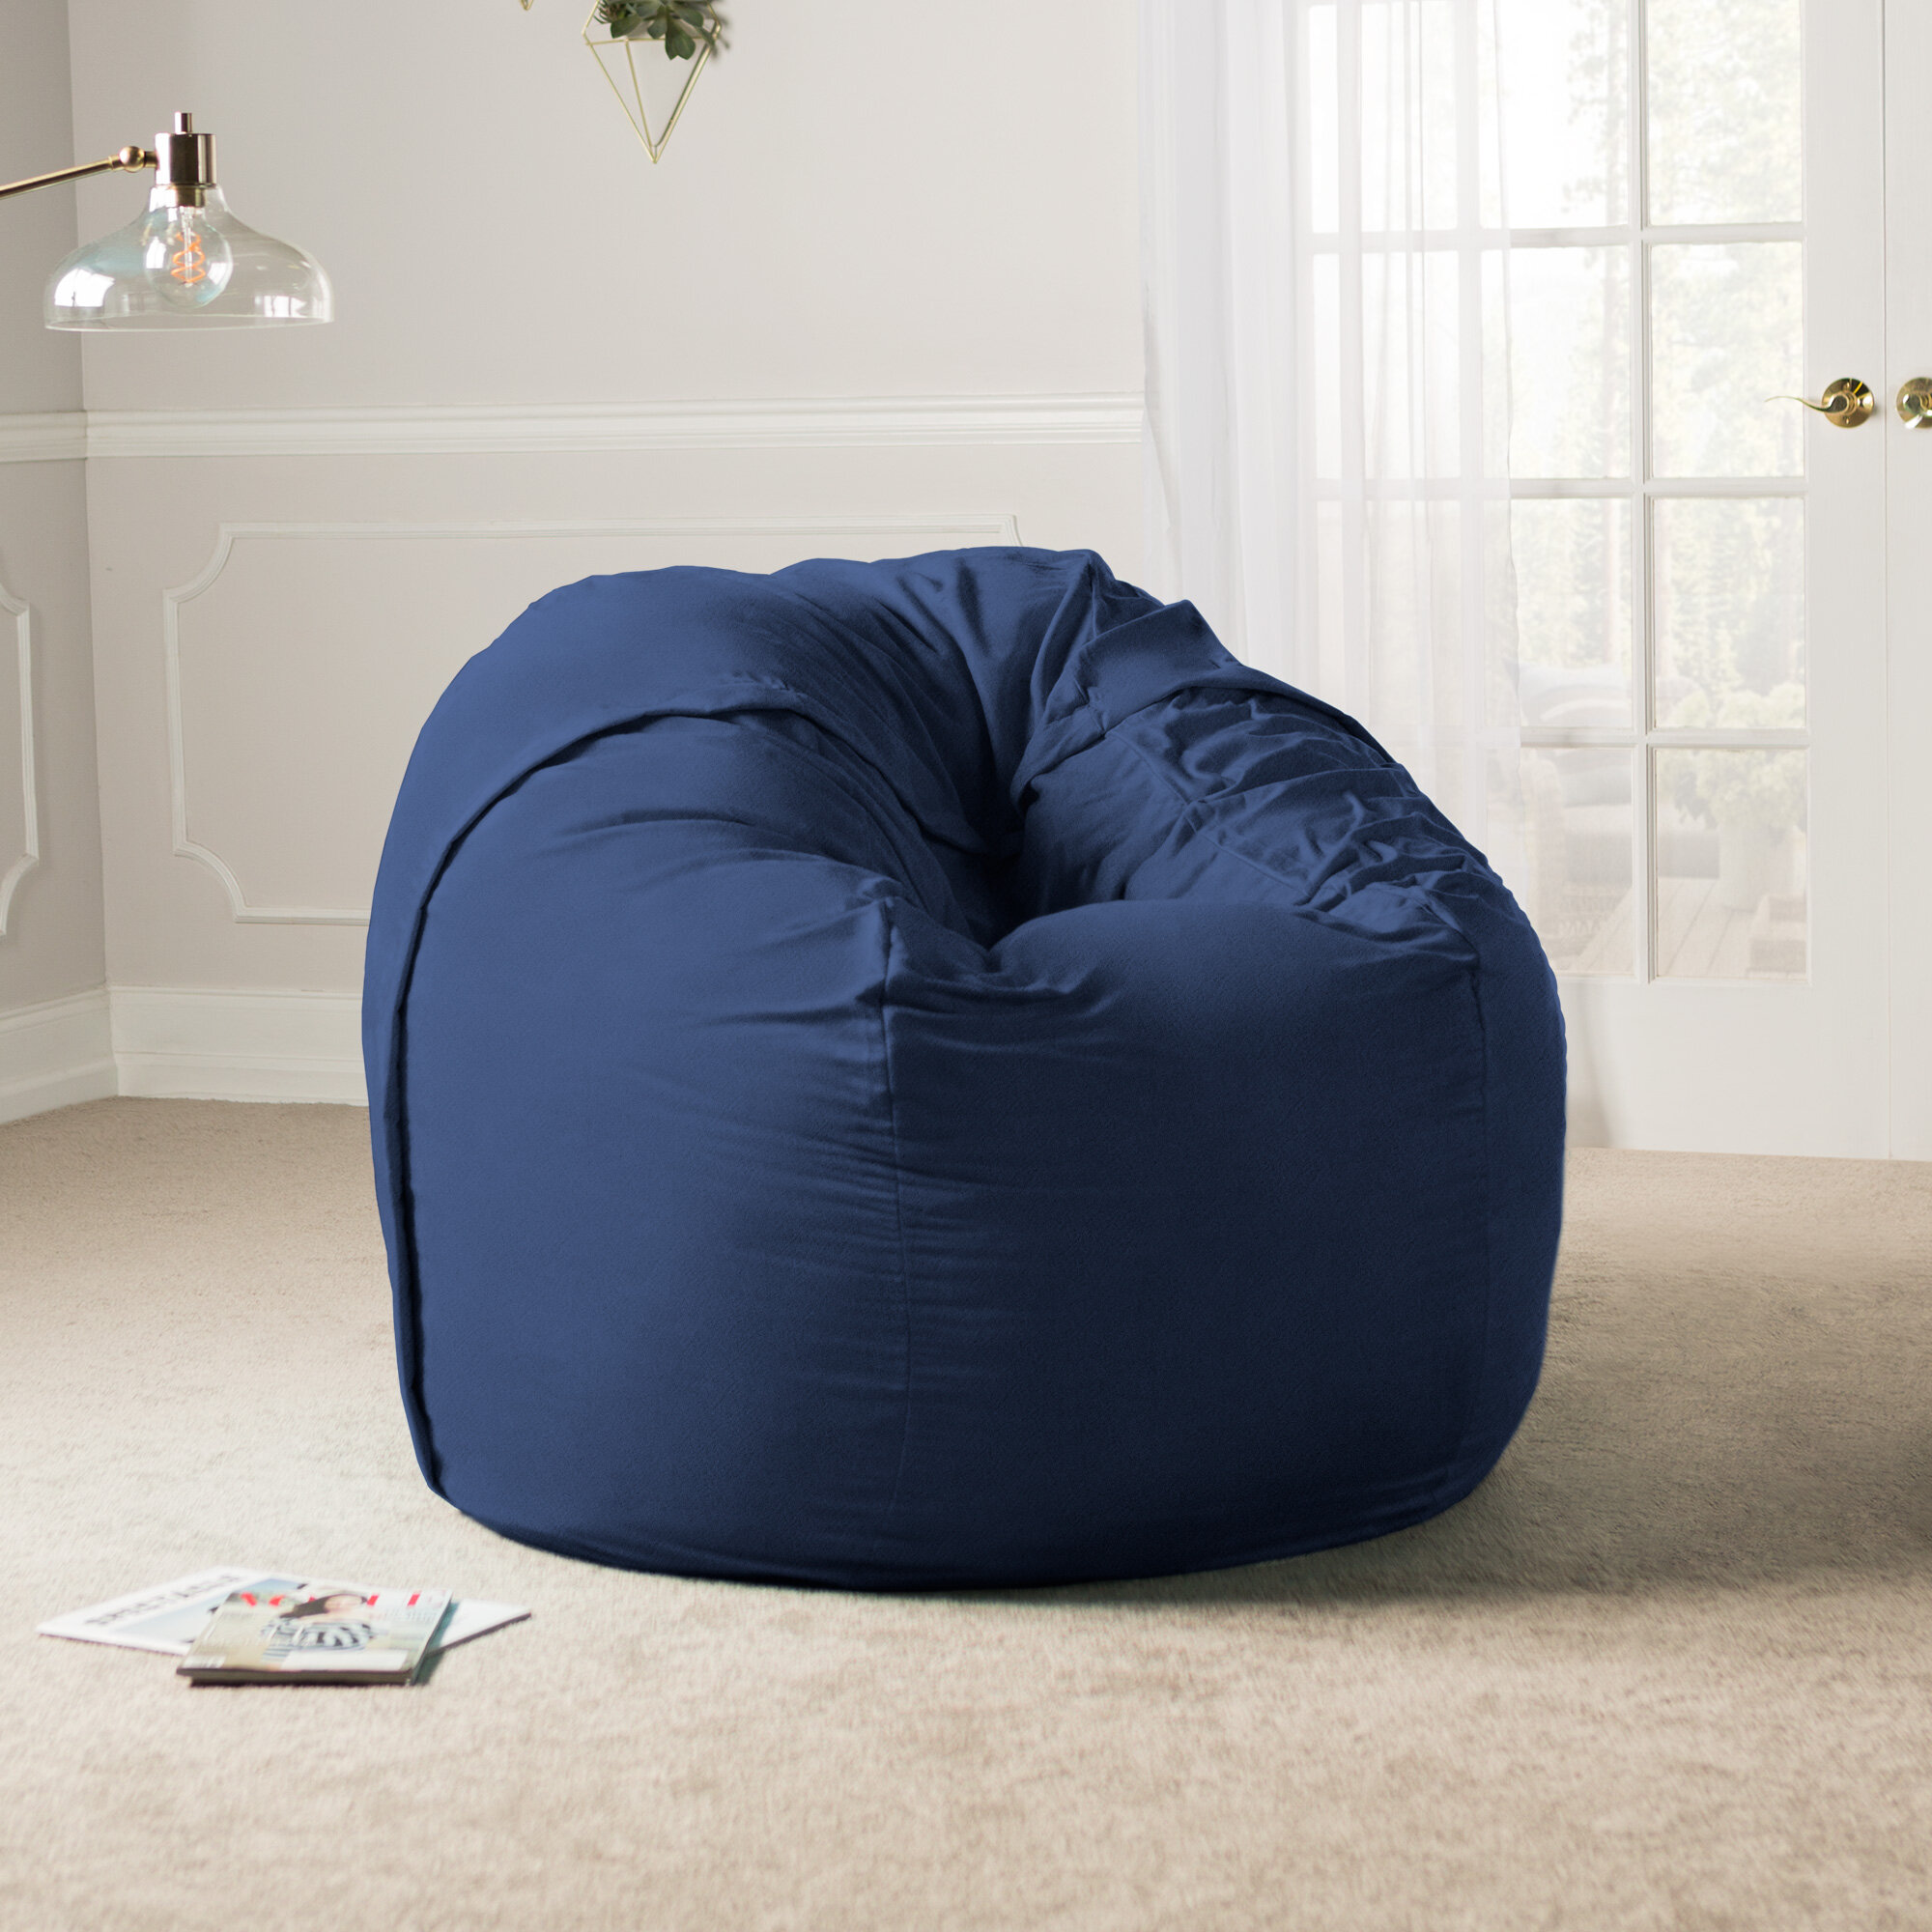 Laude Run Giant Bean Bag Chair